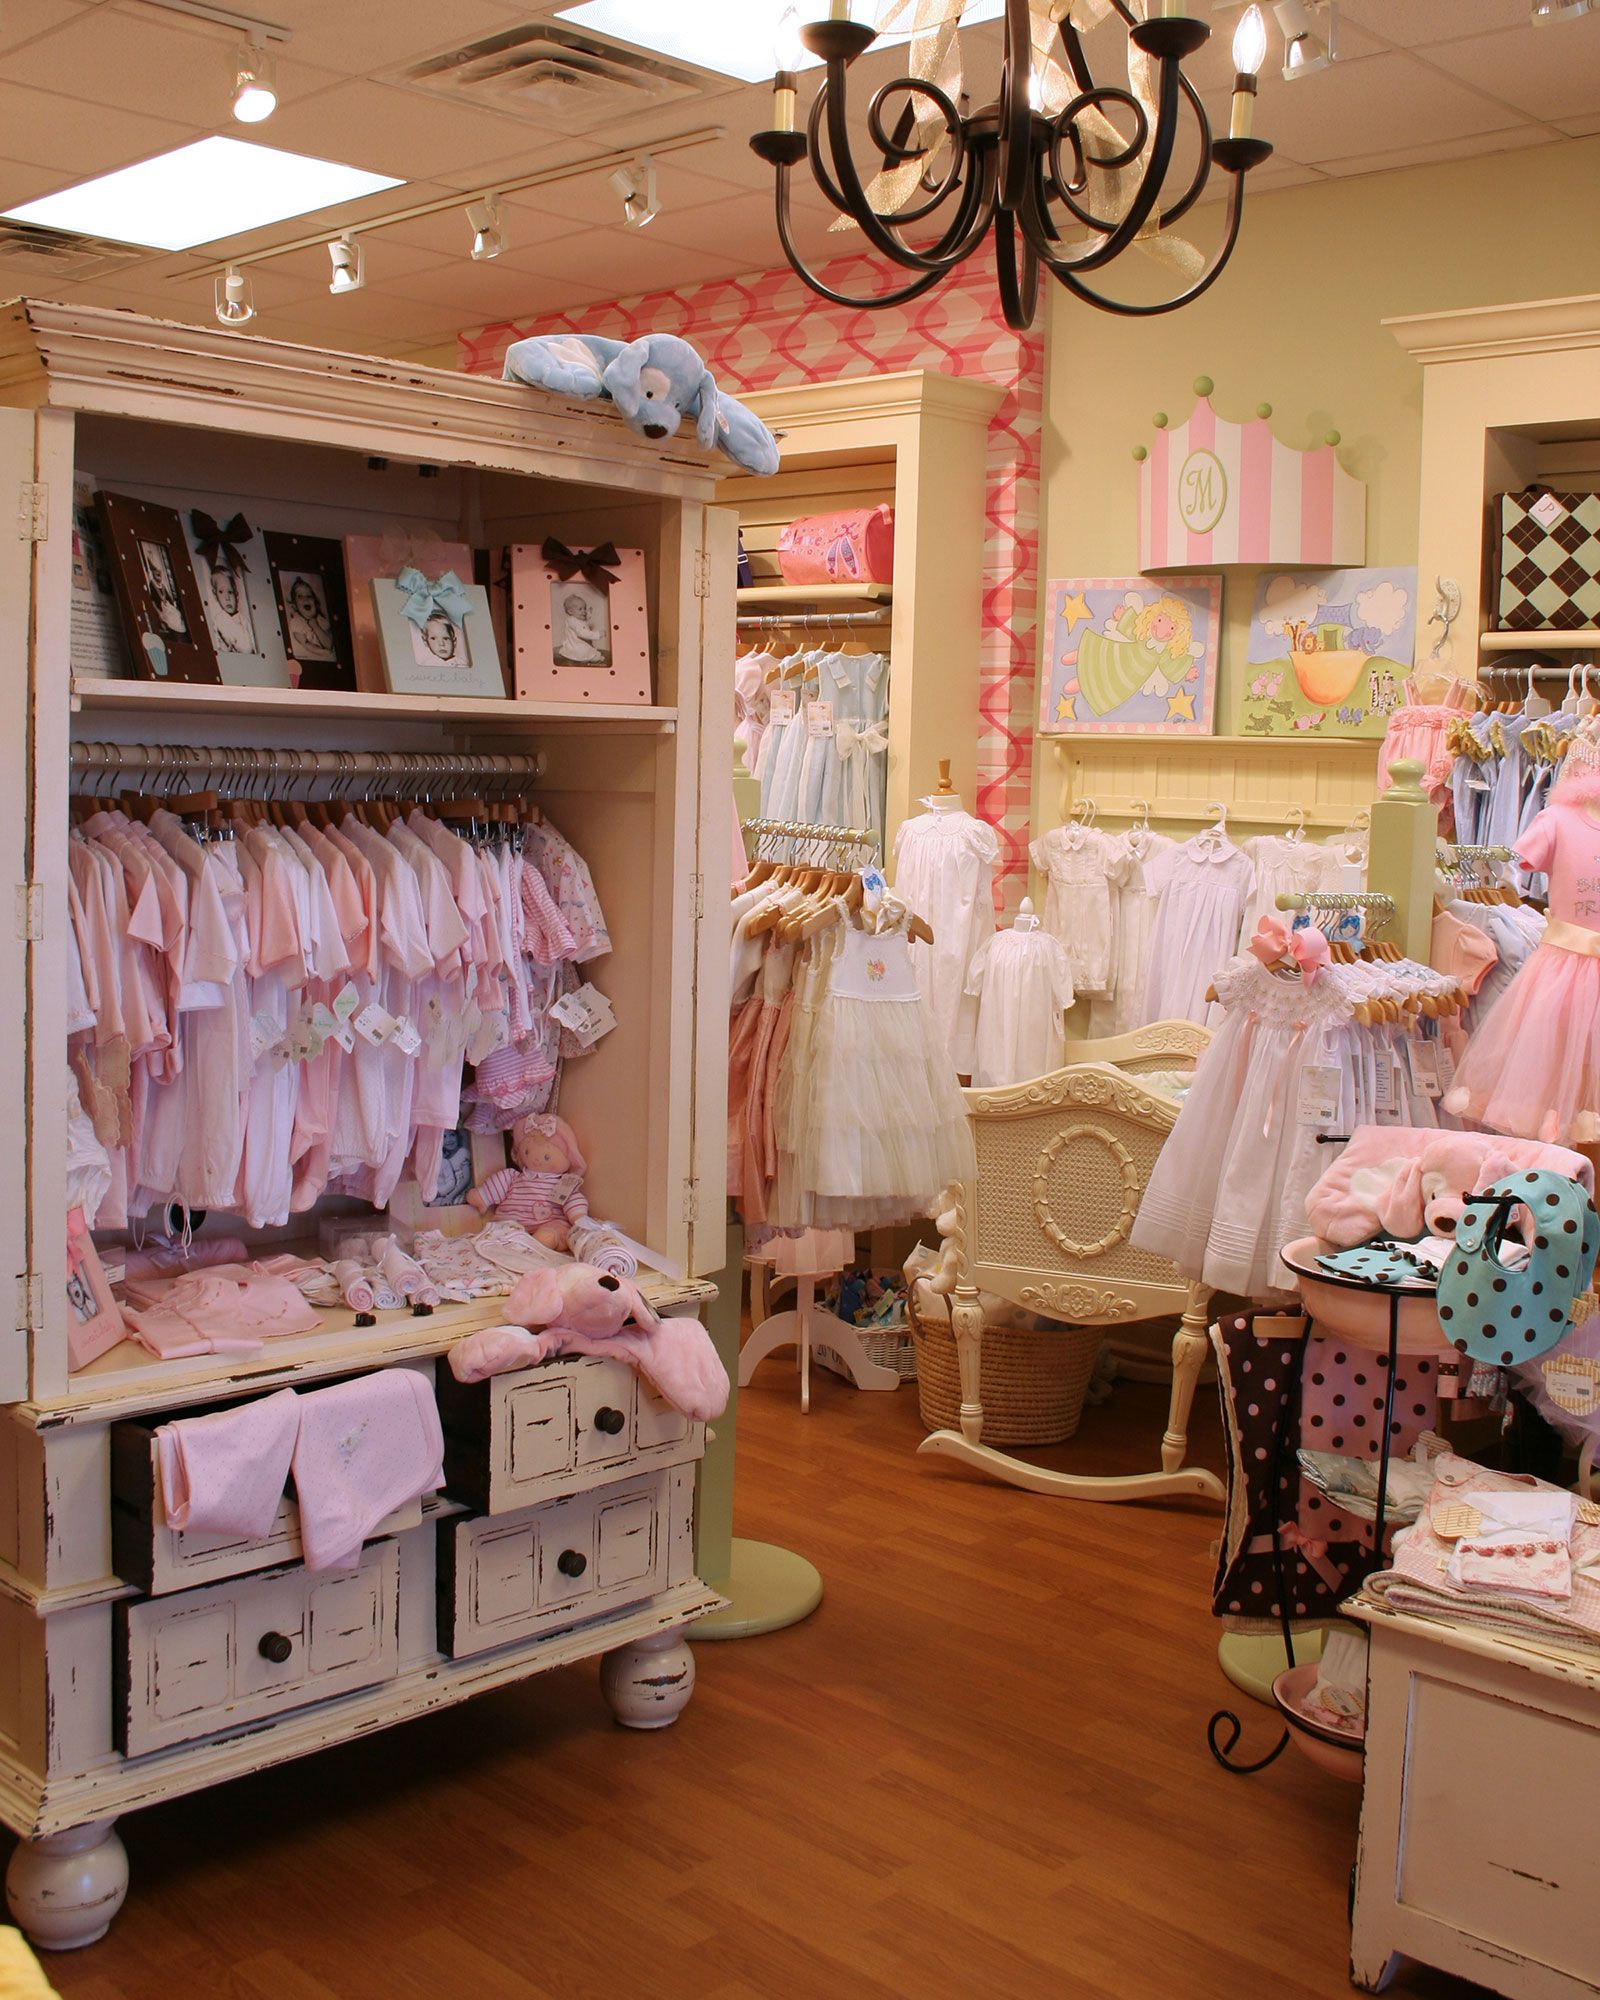 Chic Bebe Children Boutique Display Baby Store Display Commercial Design